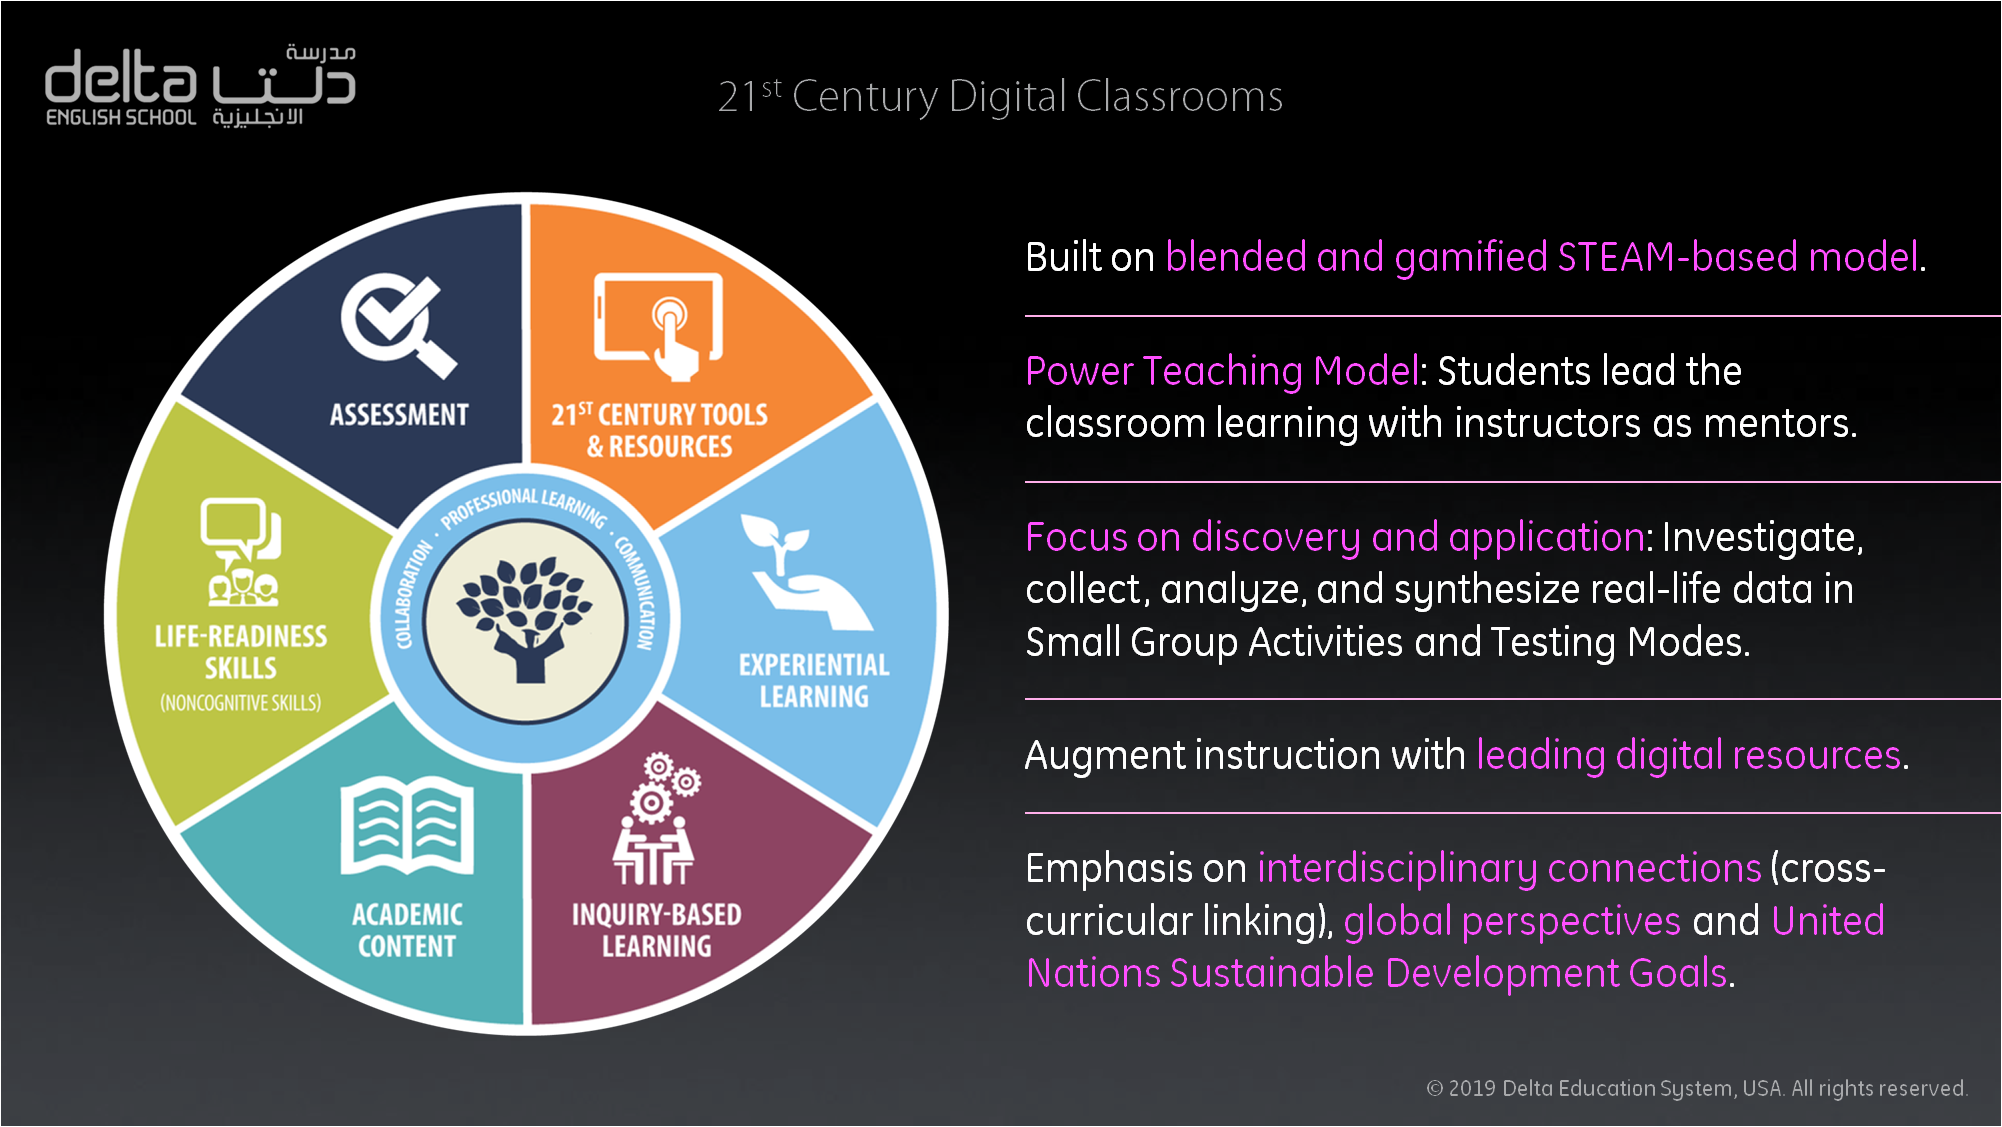 21st Century Digital Classrooms